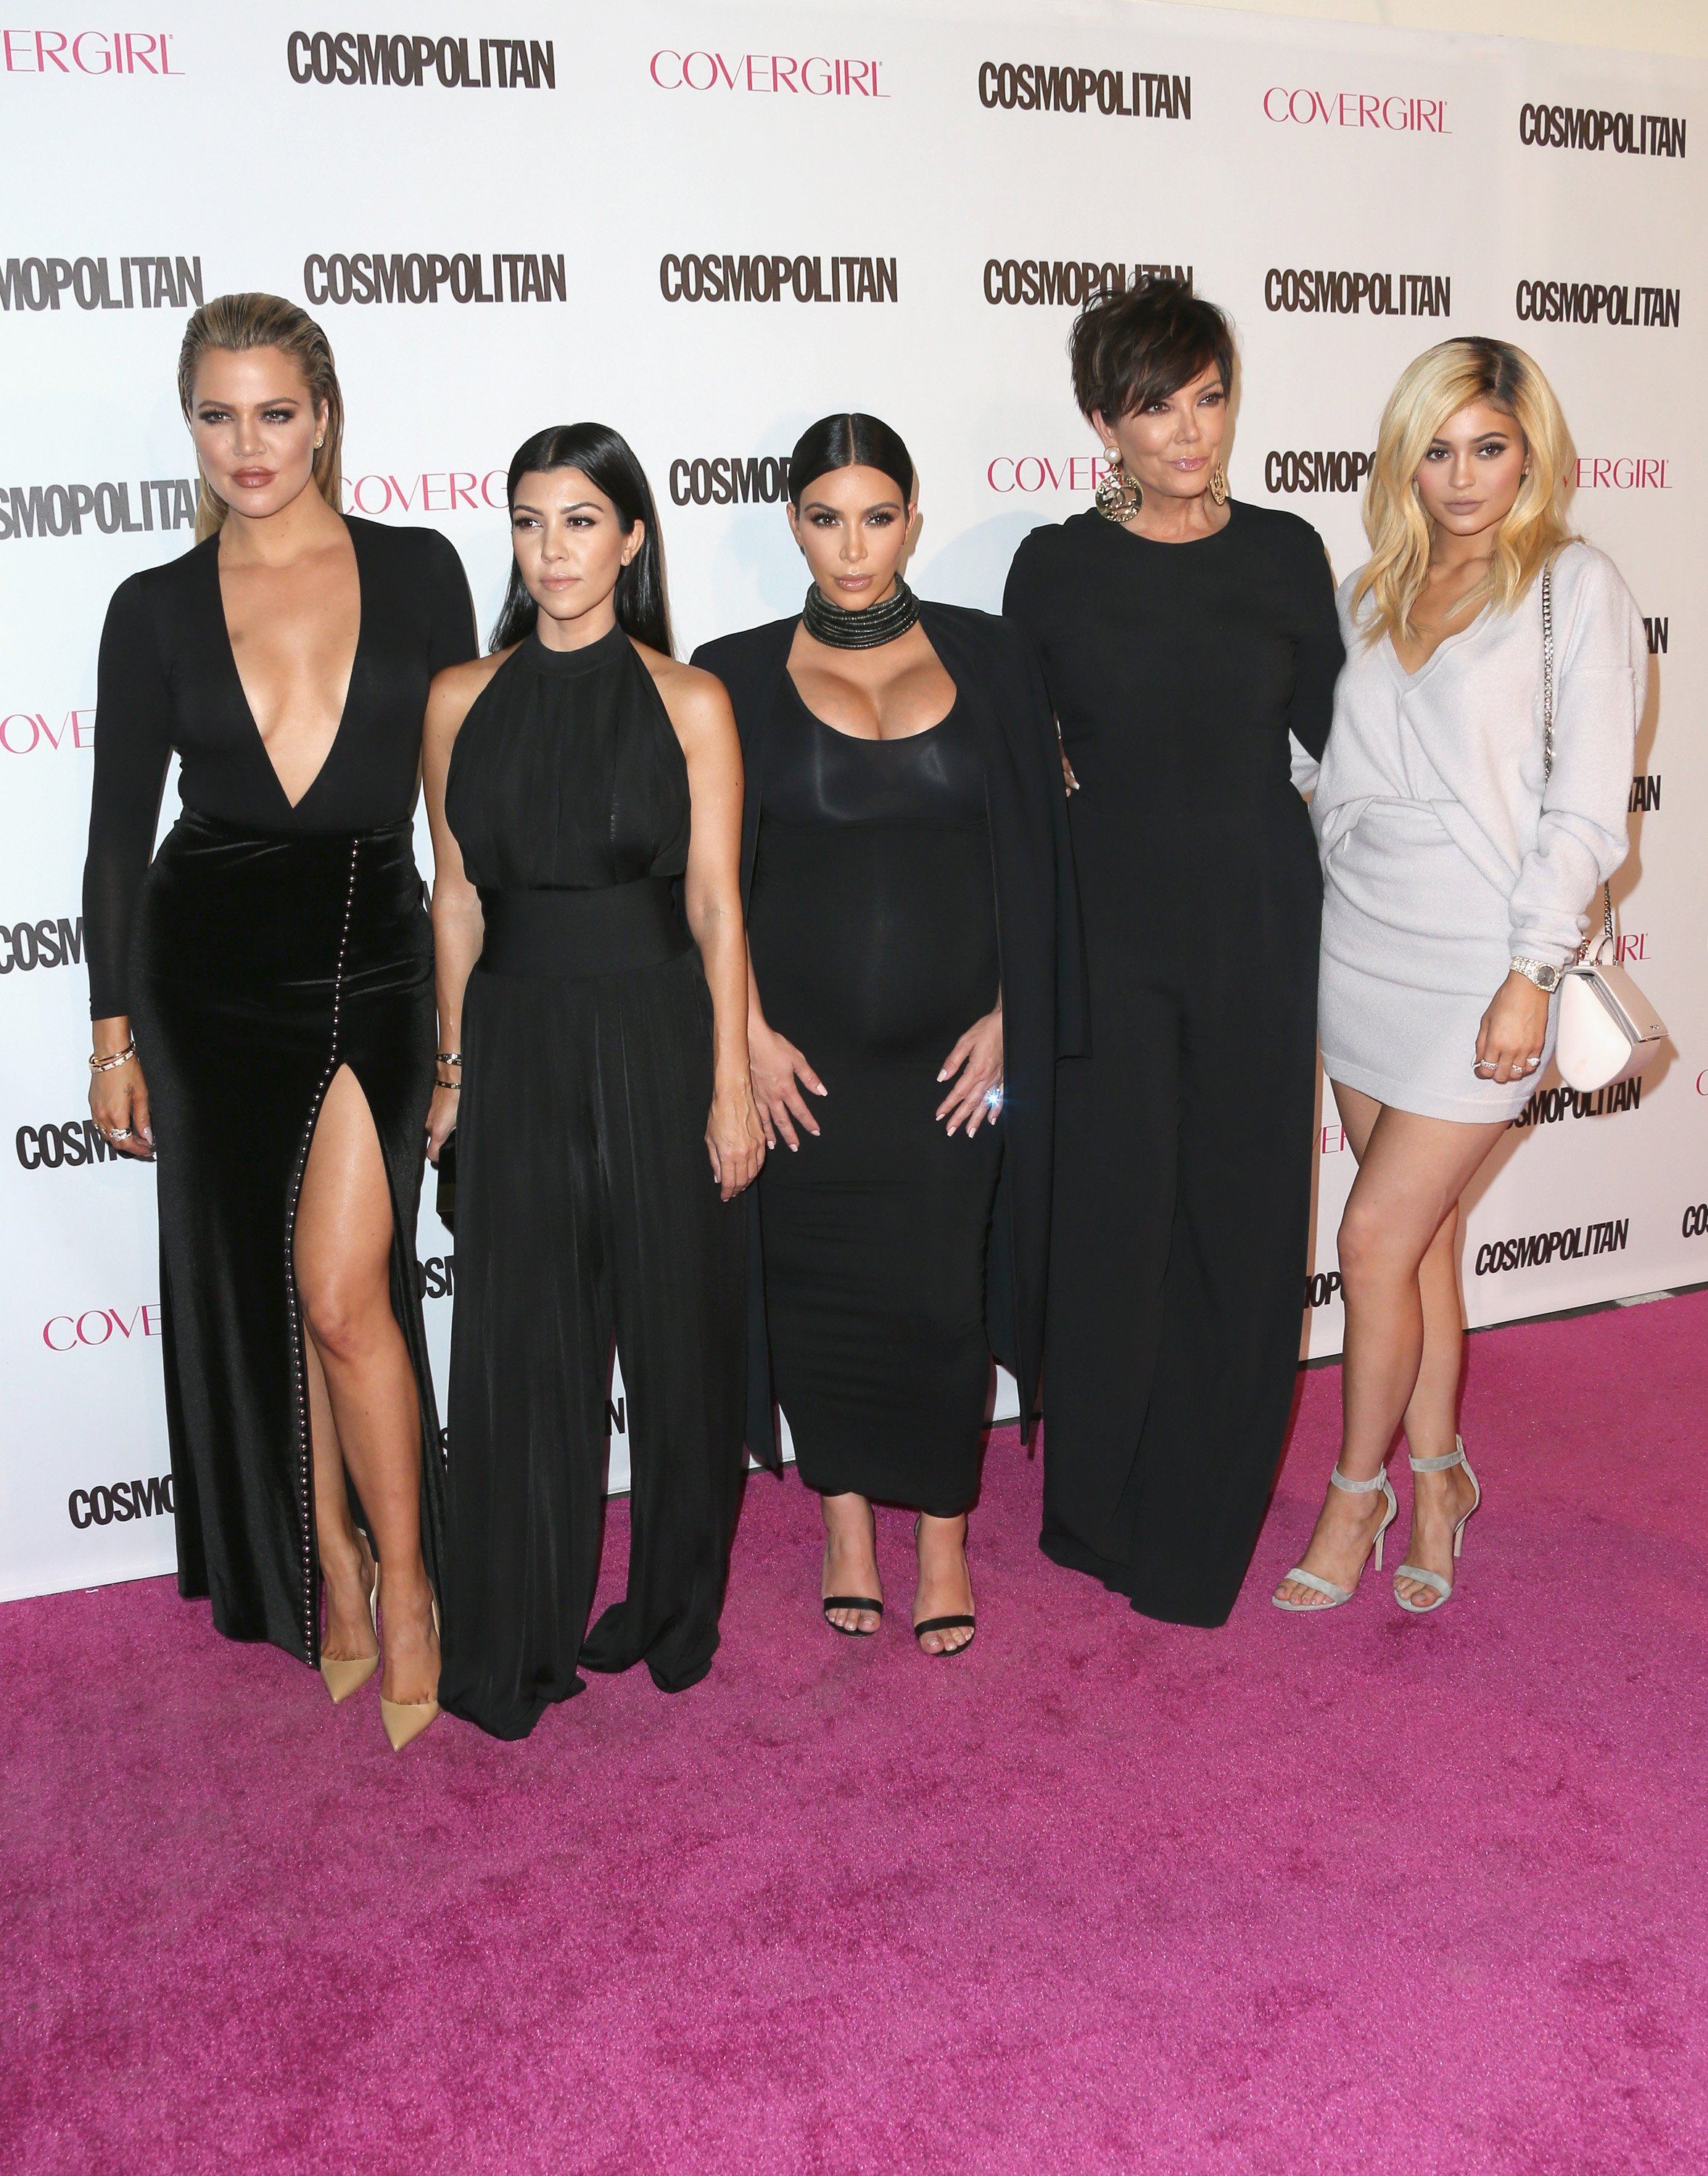 Khloe Kardashian, Kourtney Kardashian, Kim Kardashian, Kris Jenner and Kylie Jenner attend Cosmopolitan's 50th Birthday Celebration at Ysabel on October 12, 2015, in West Hollywood, California. | Source: Getty Images.